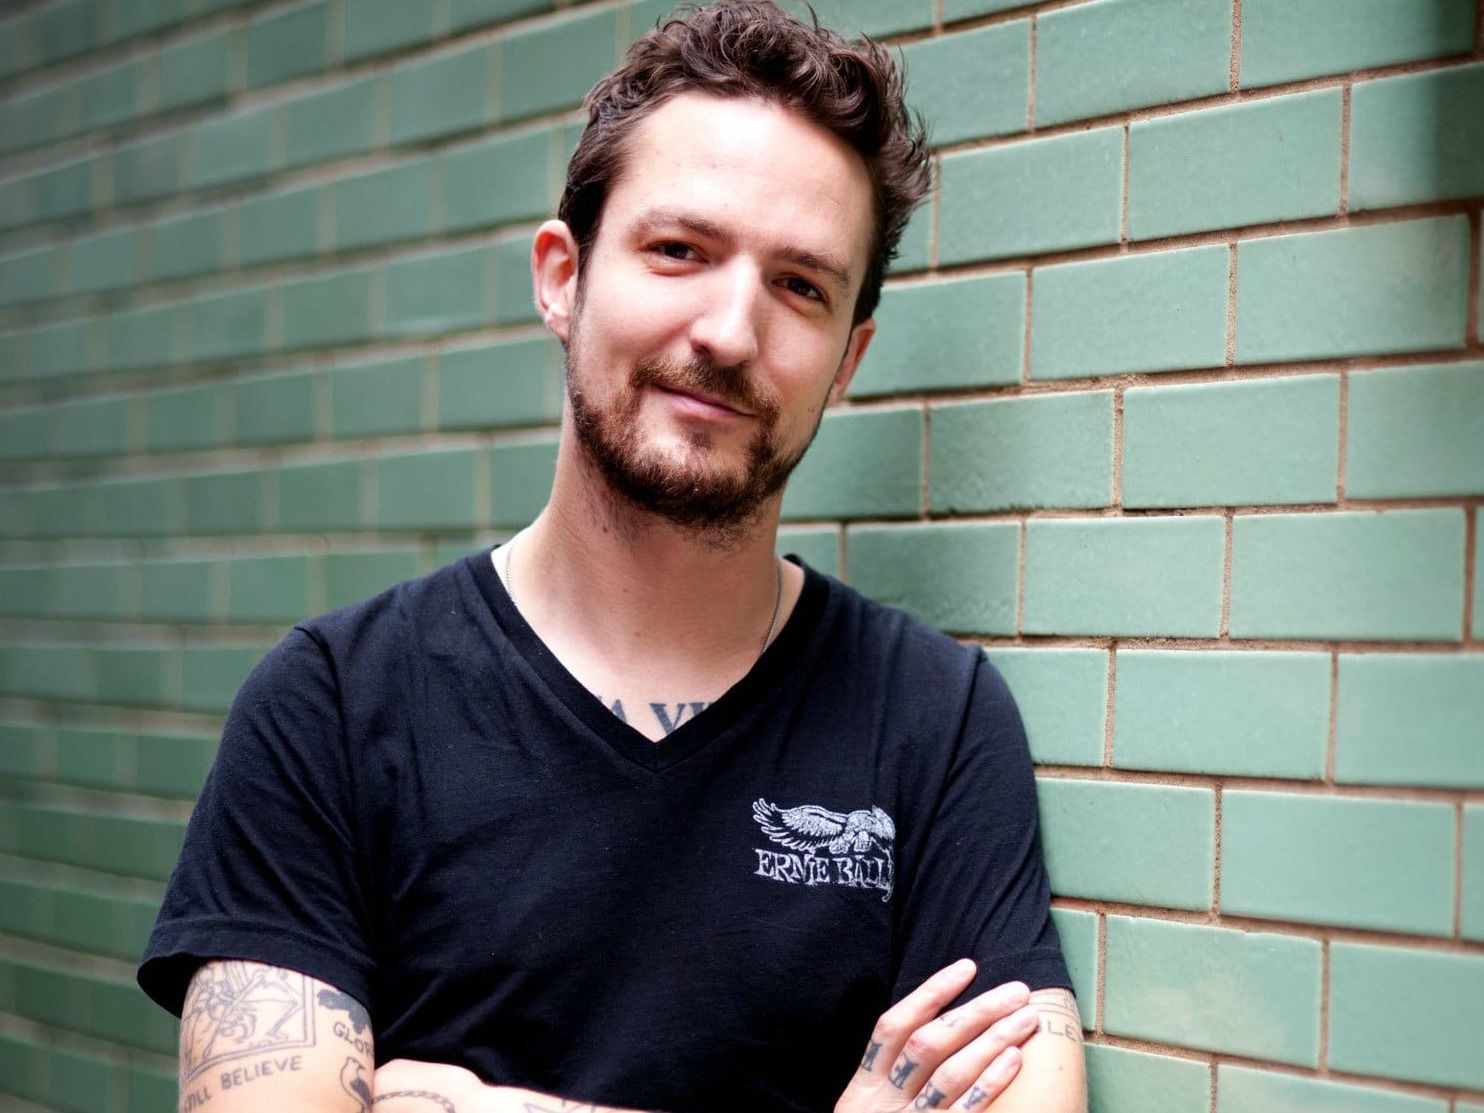 Frank Turner Implores Us To 'Be More Kind'